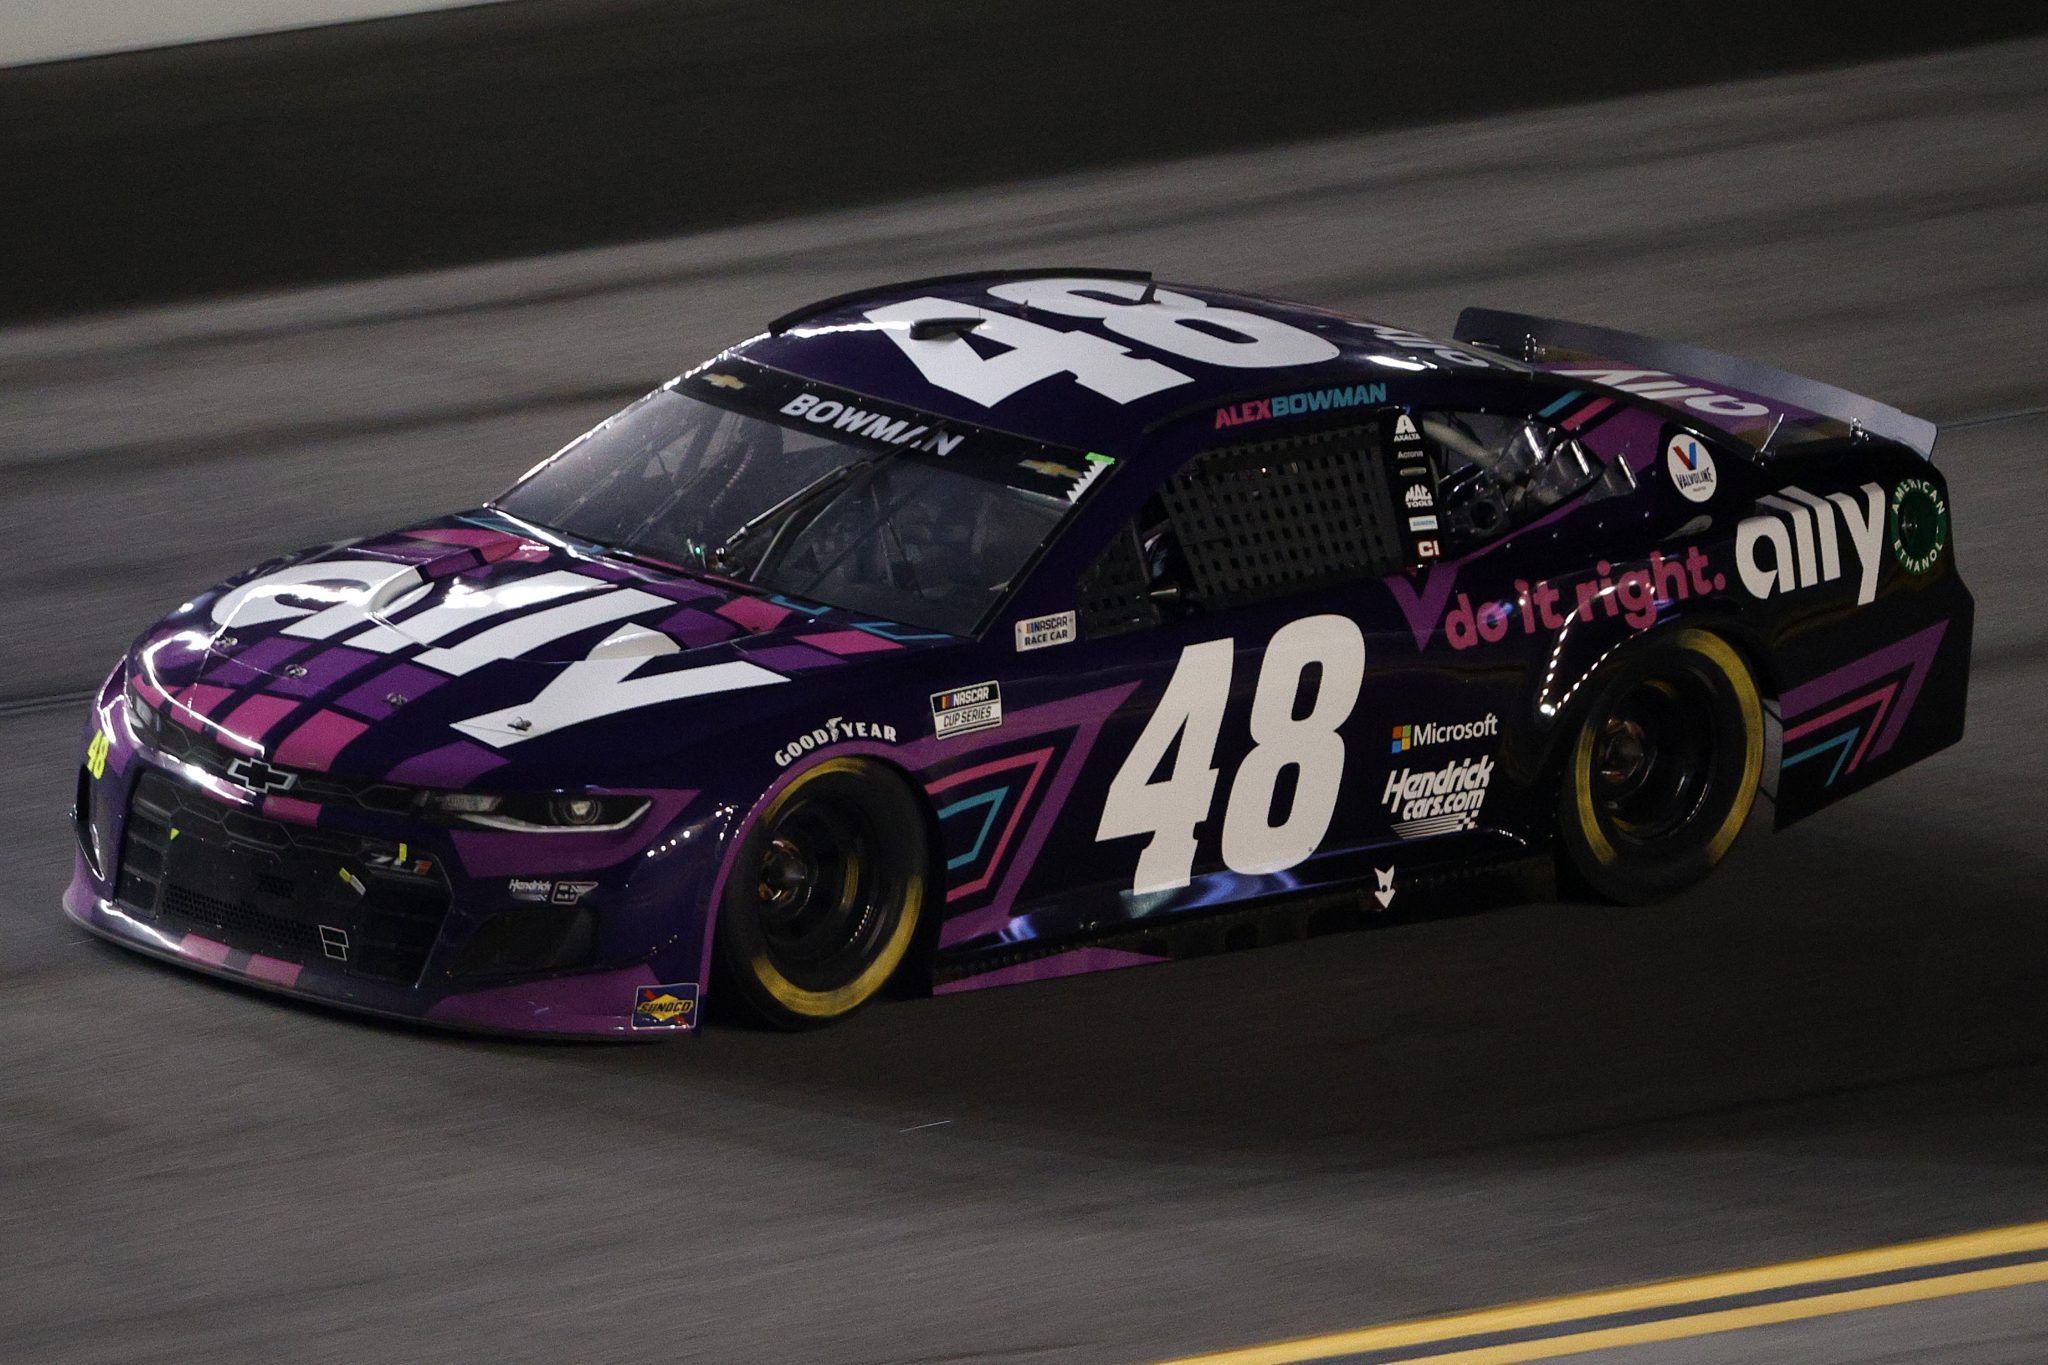 DAYTONA BEACH, FLORIDA - FEBRUARY 09: Alex Bowman, driver of the #48 Ally Chevrolet, drives during the NASCAR Cup Series Busch Clash at Daytona at Daytona International Speedway on February 09, 2021 in Daytona Beach, Florida. (Photo by Chris Graythen/Getty Images) | Getty Images